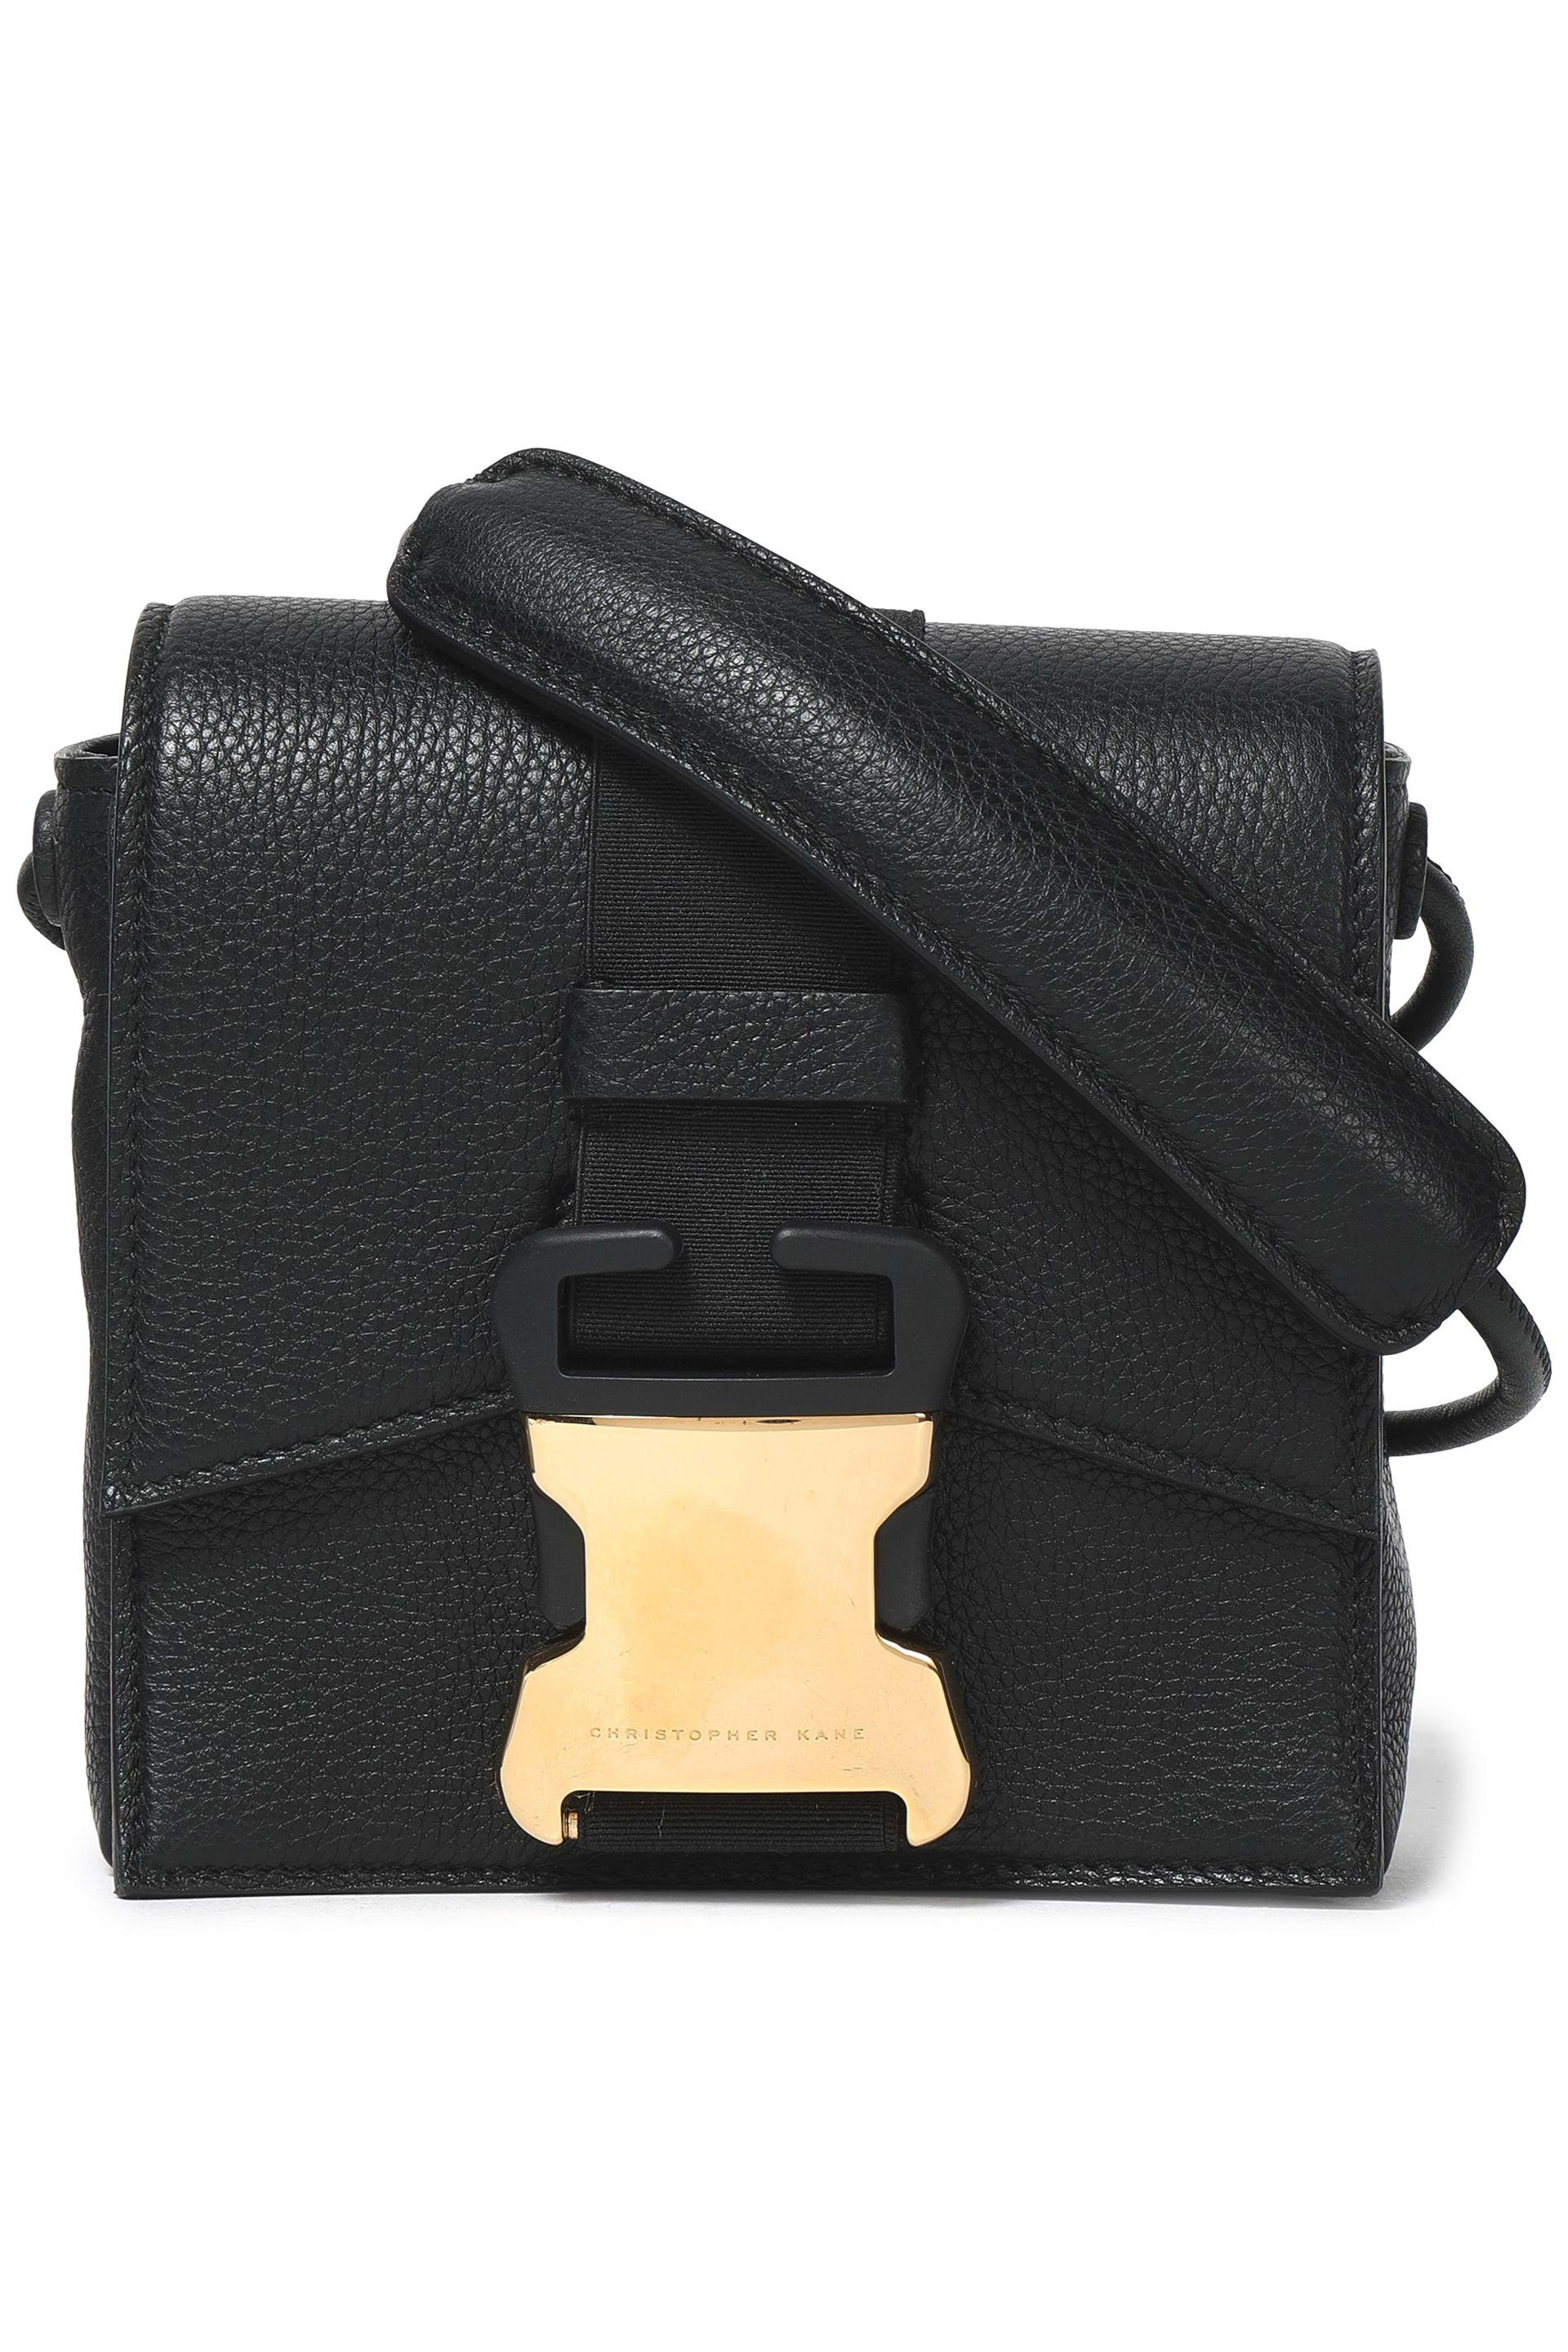 171b2ccab15 Gallery. Previously sold at: THE OUTNET.COM · Women's Leather Bags